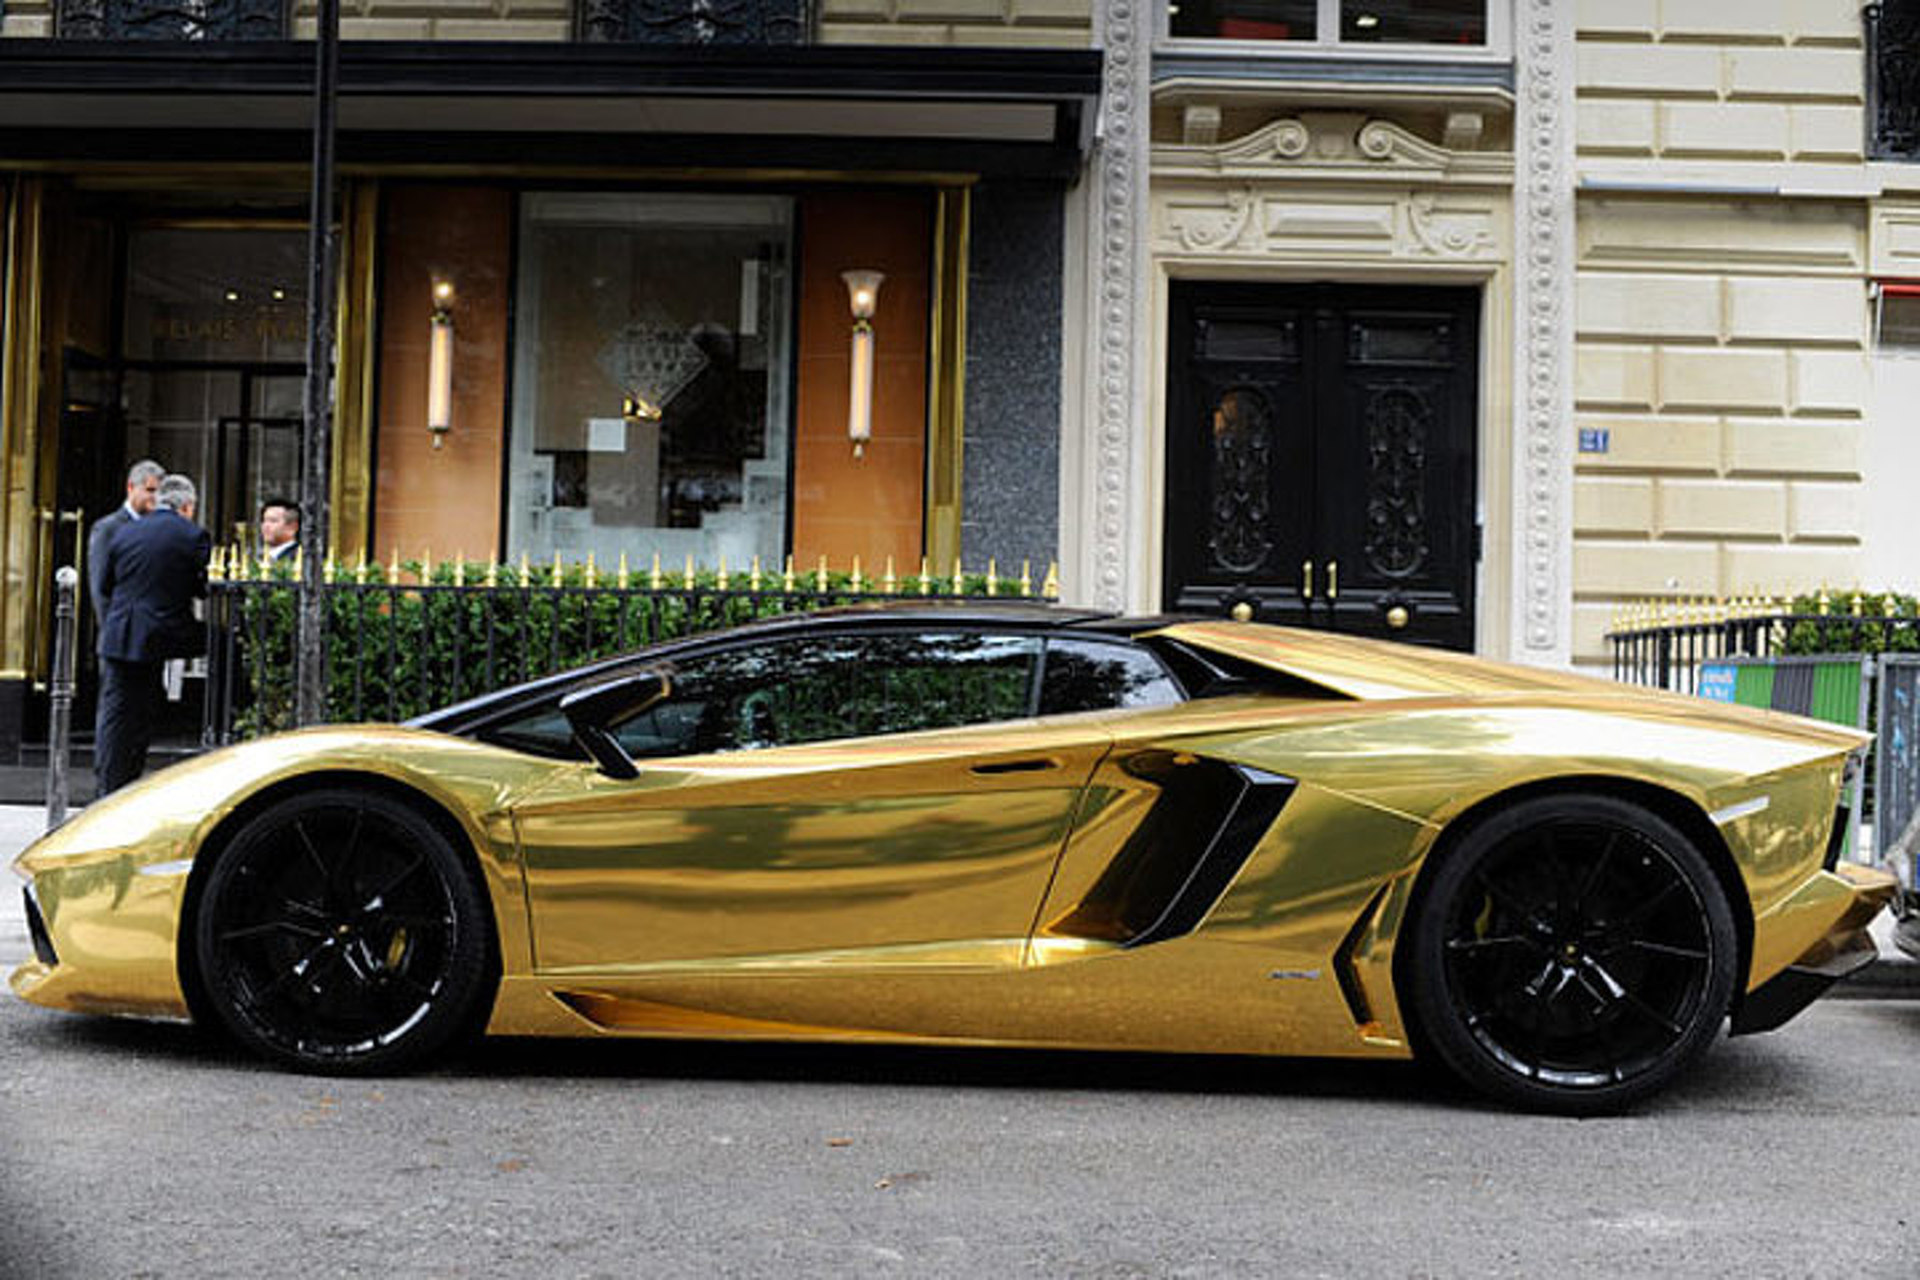 $6.3 Million Lamborghini Aventador Rolls up in Paris